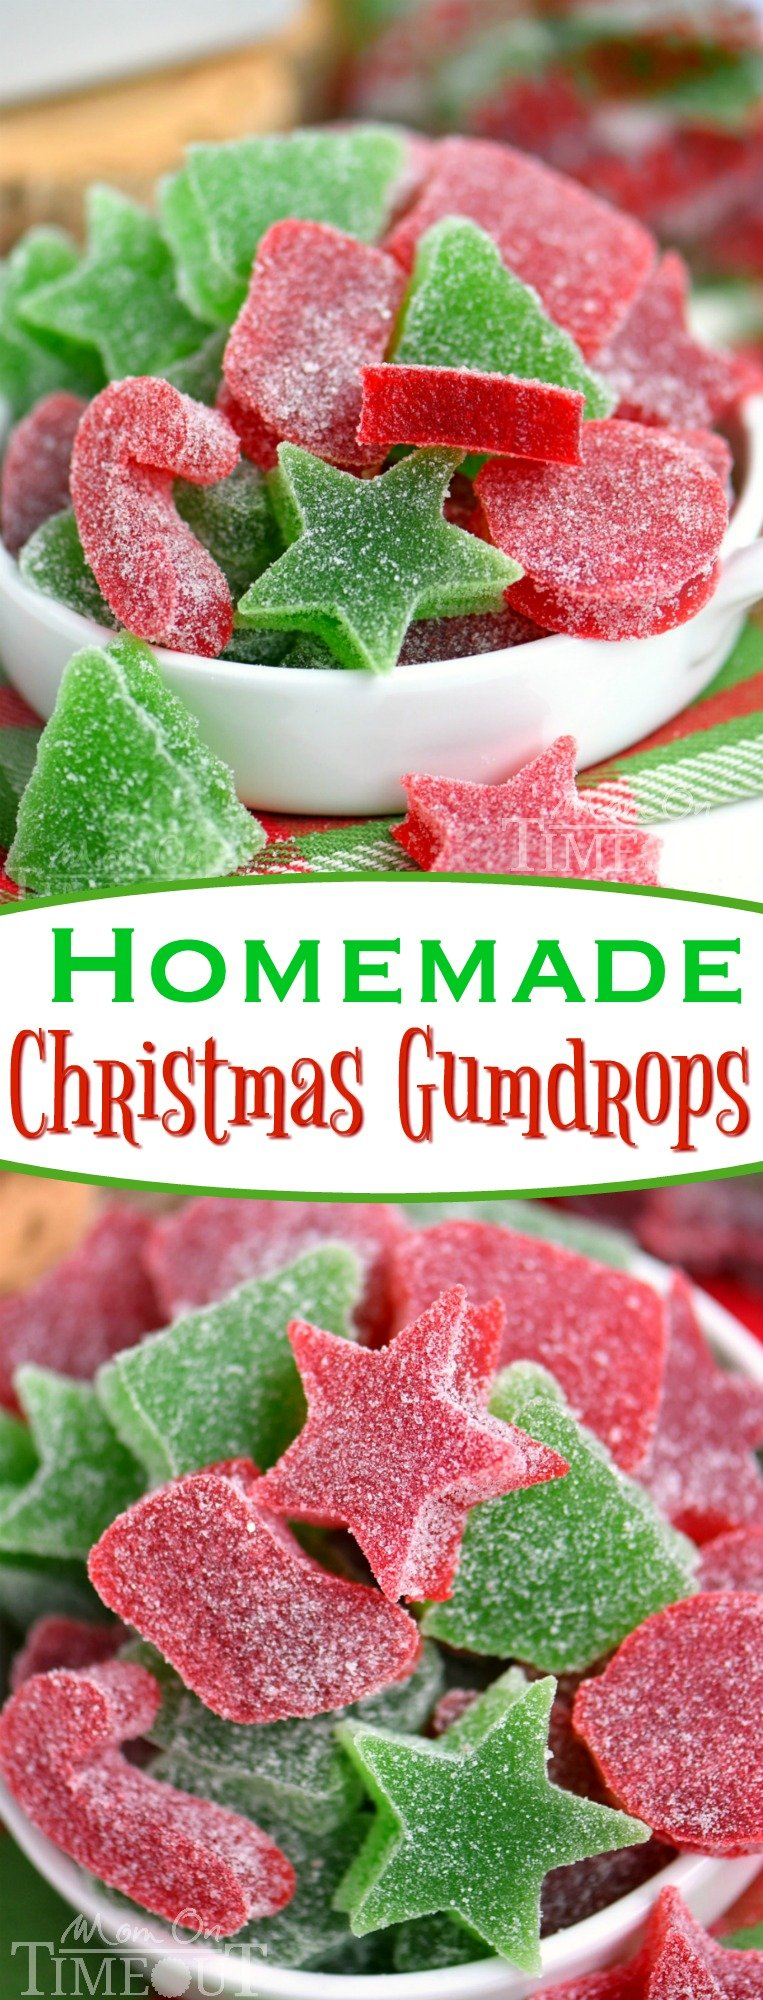 These Homemade Gumdrops are the perfect treat to make for friends and family during the holidays! Made with just a handful of ingredients - including applesauce - these gumdrops are sure to become a holiday tradition! A Christmas favorite with our family! // Mom On Timeout